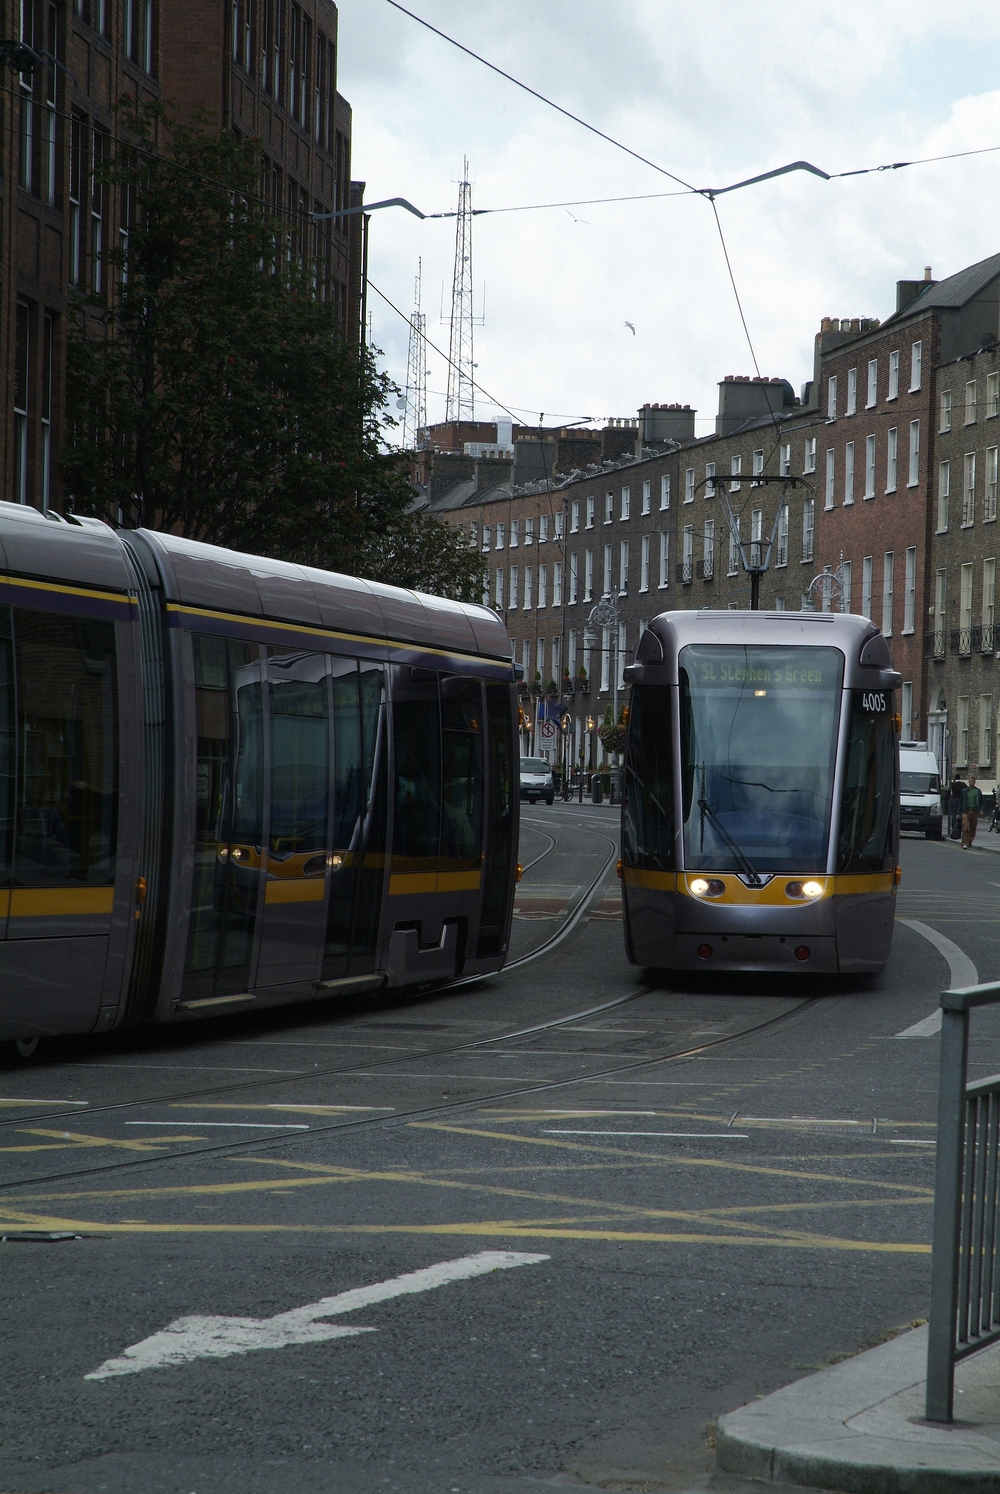 Luas at Harcourt Street